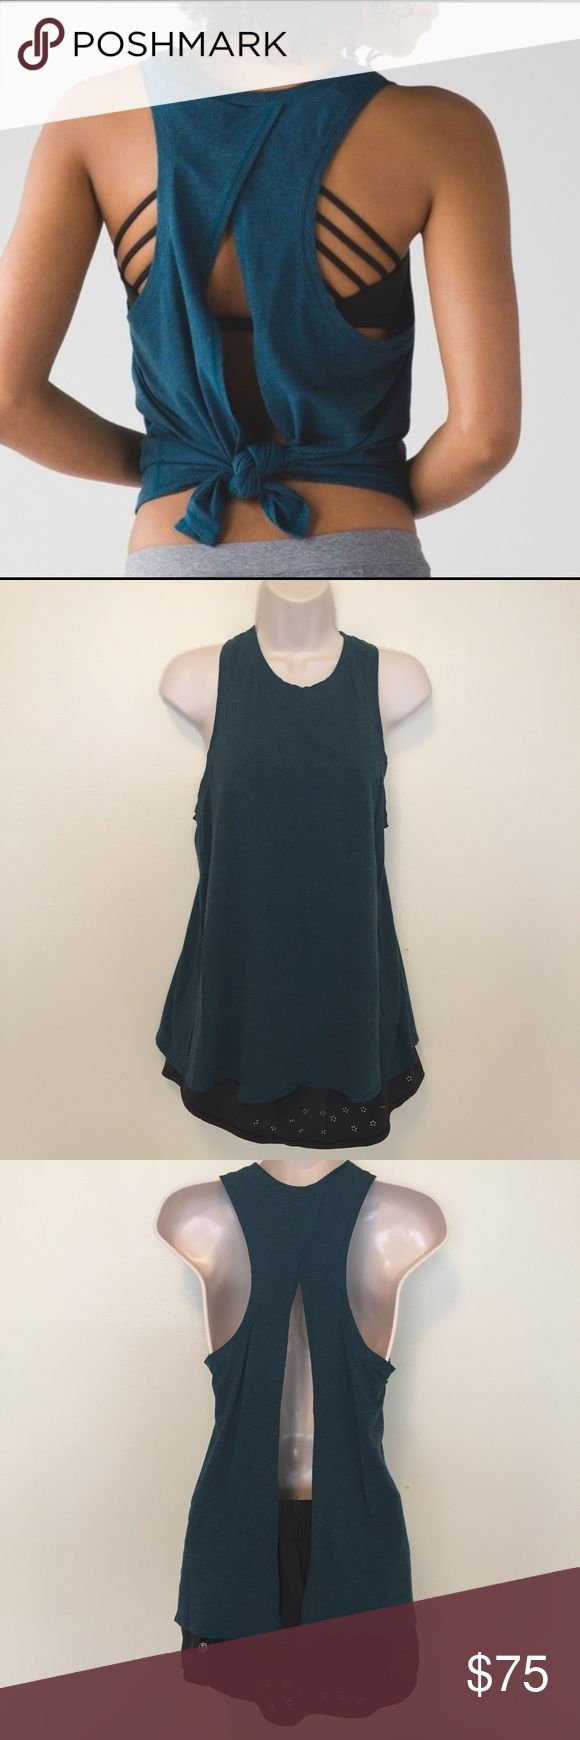 ✨HP✨lululemon all tied up tank. alberta lake. lululemon all tied up tank. alberta lake. teal. 4. never work to work out. great condition. lululemon athletica Tops Tank Tops